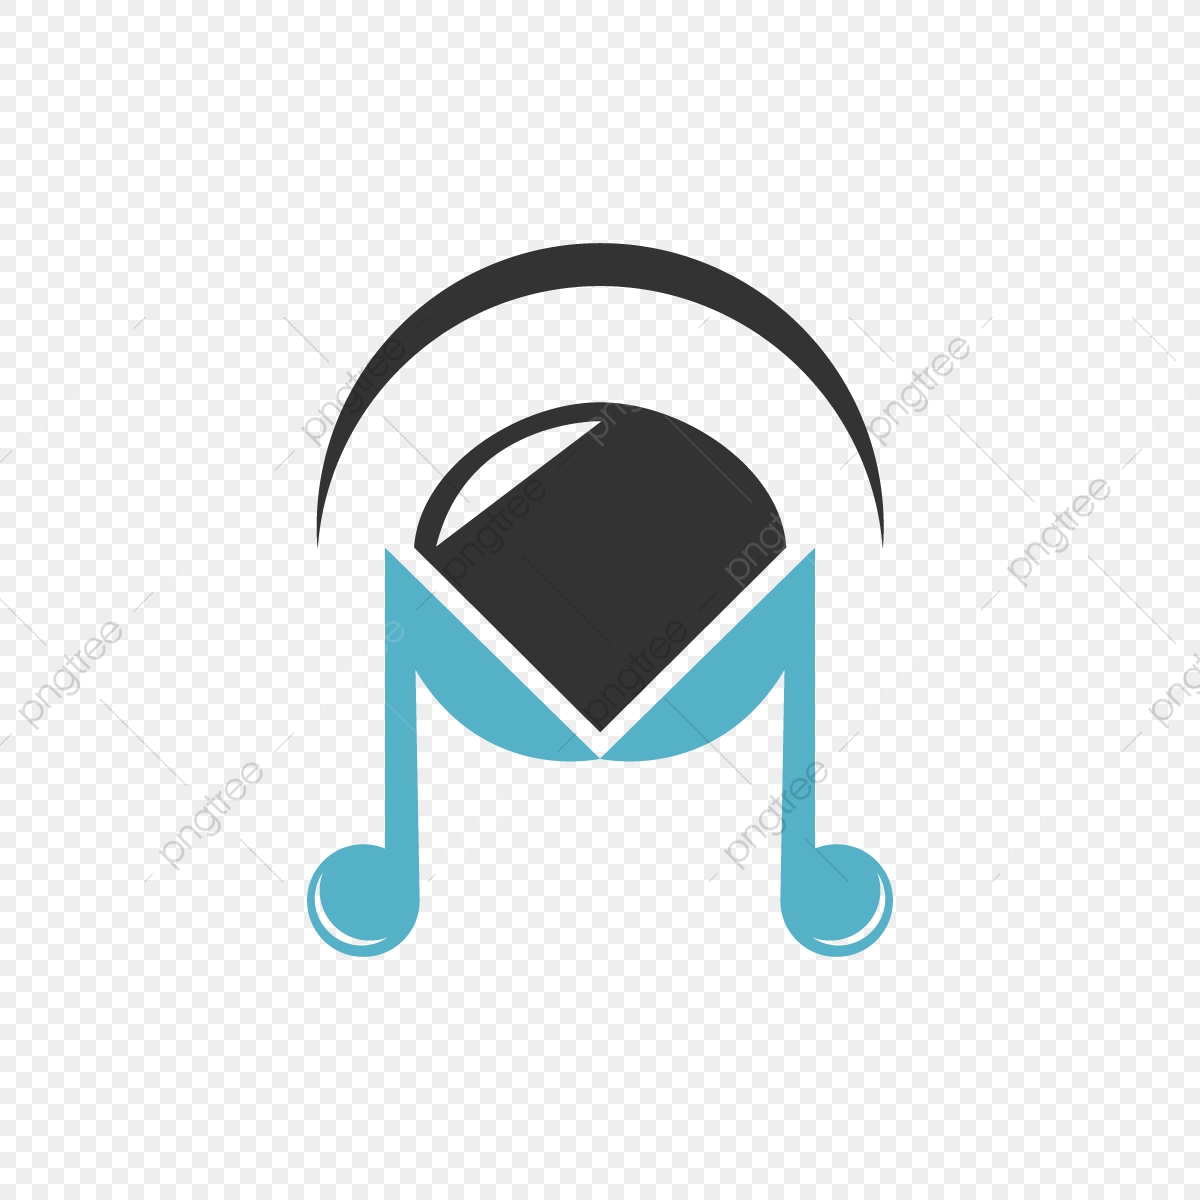 Music Logo Music Clipart Logo Clipart Radio Station Png And Vector With Transparent Background For Free Download